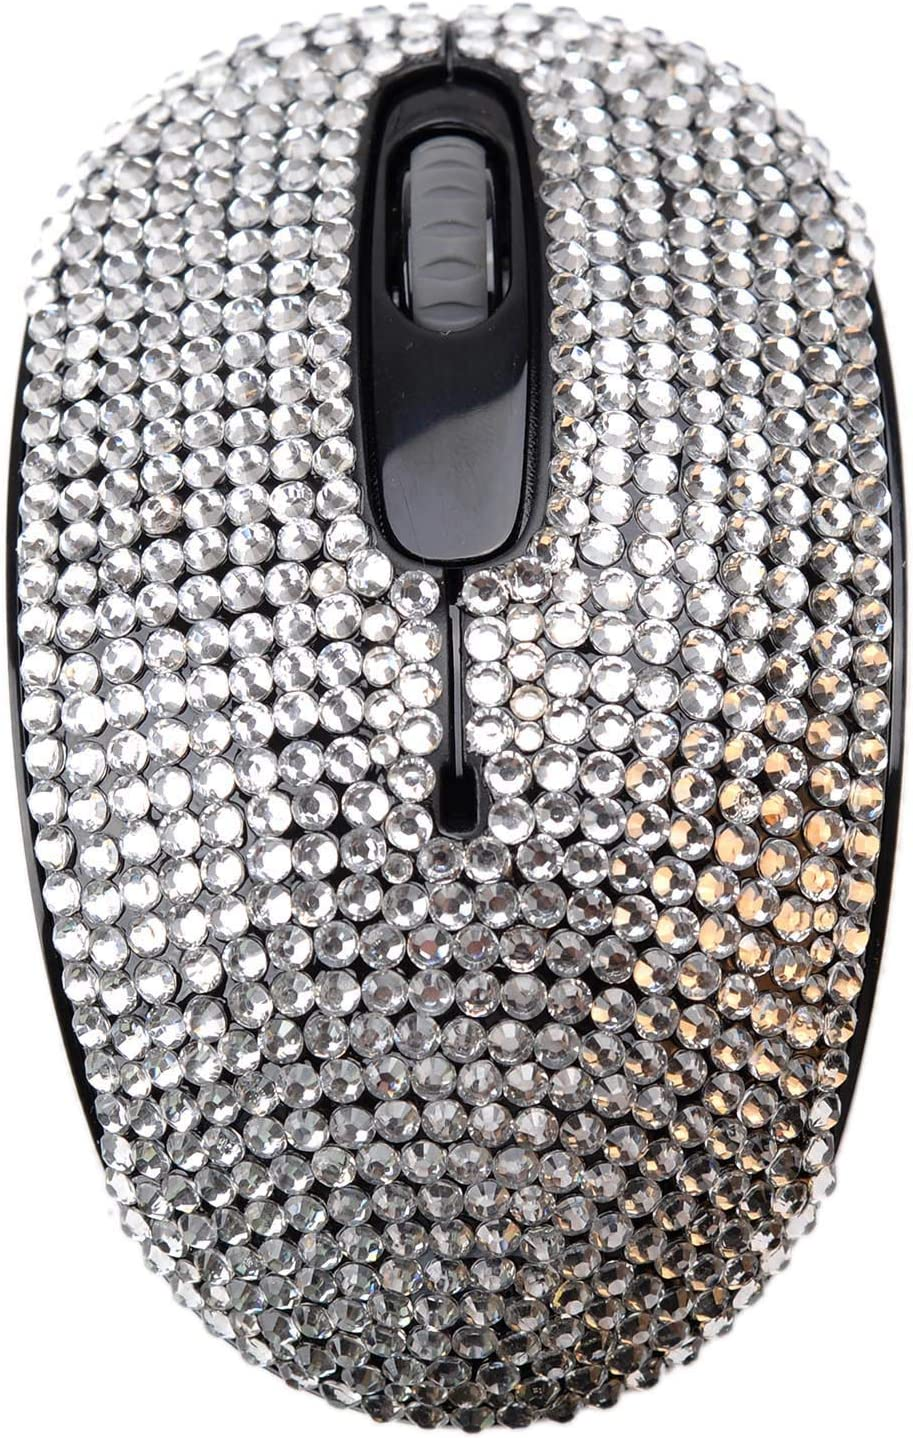 Bling Bling Wireless Mouse Covered with Rhinestone Crystal with USB Receiver Compatible for Microsoft Windows,iMac,MacBook